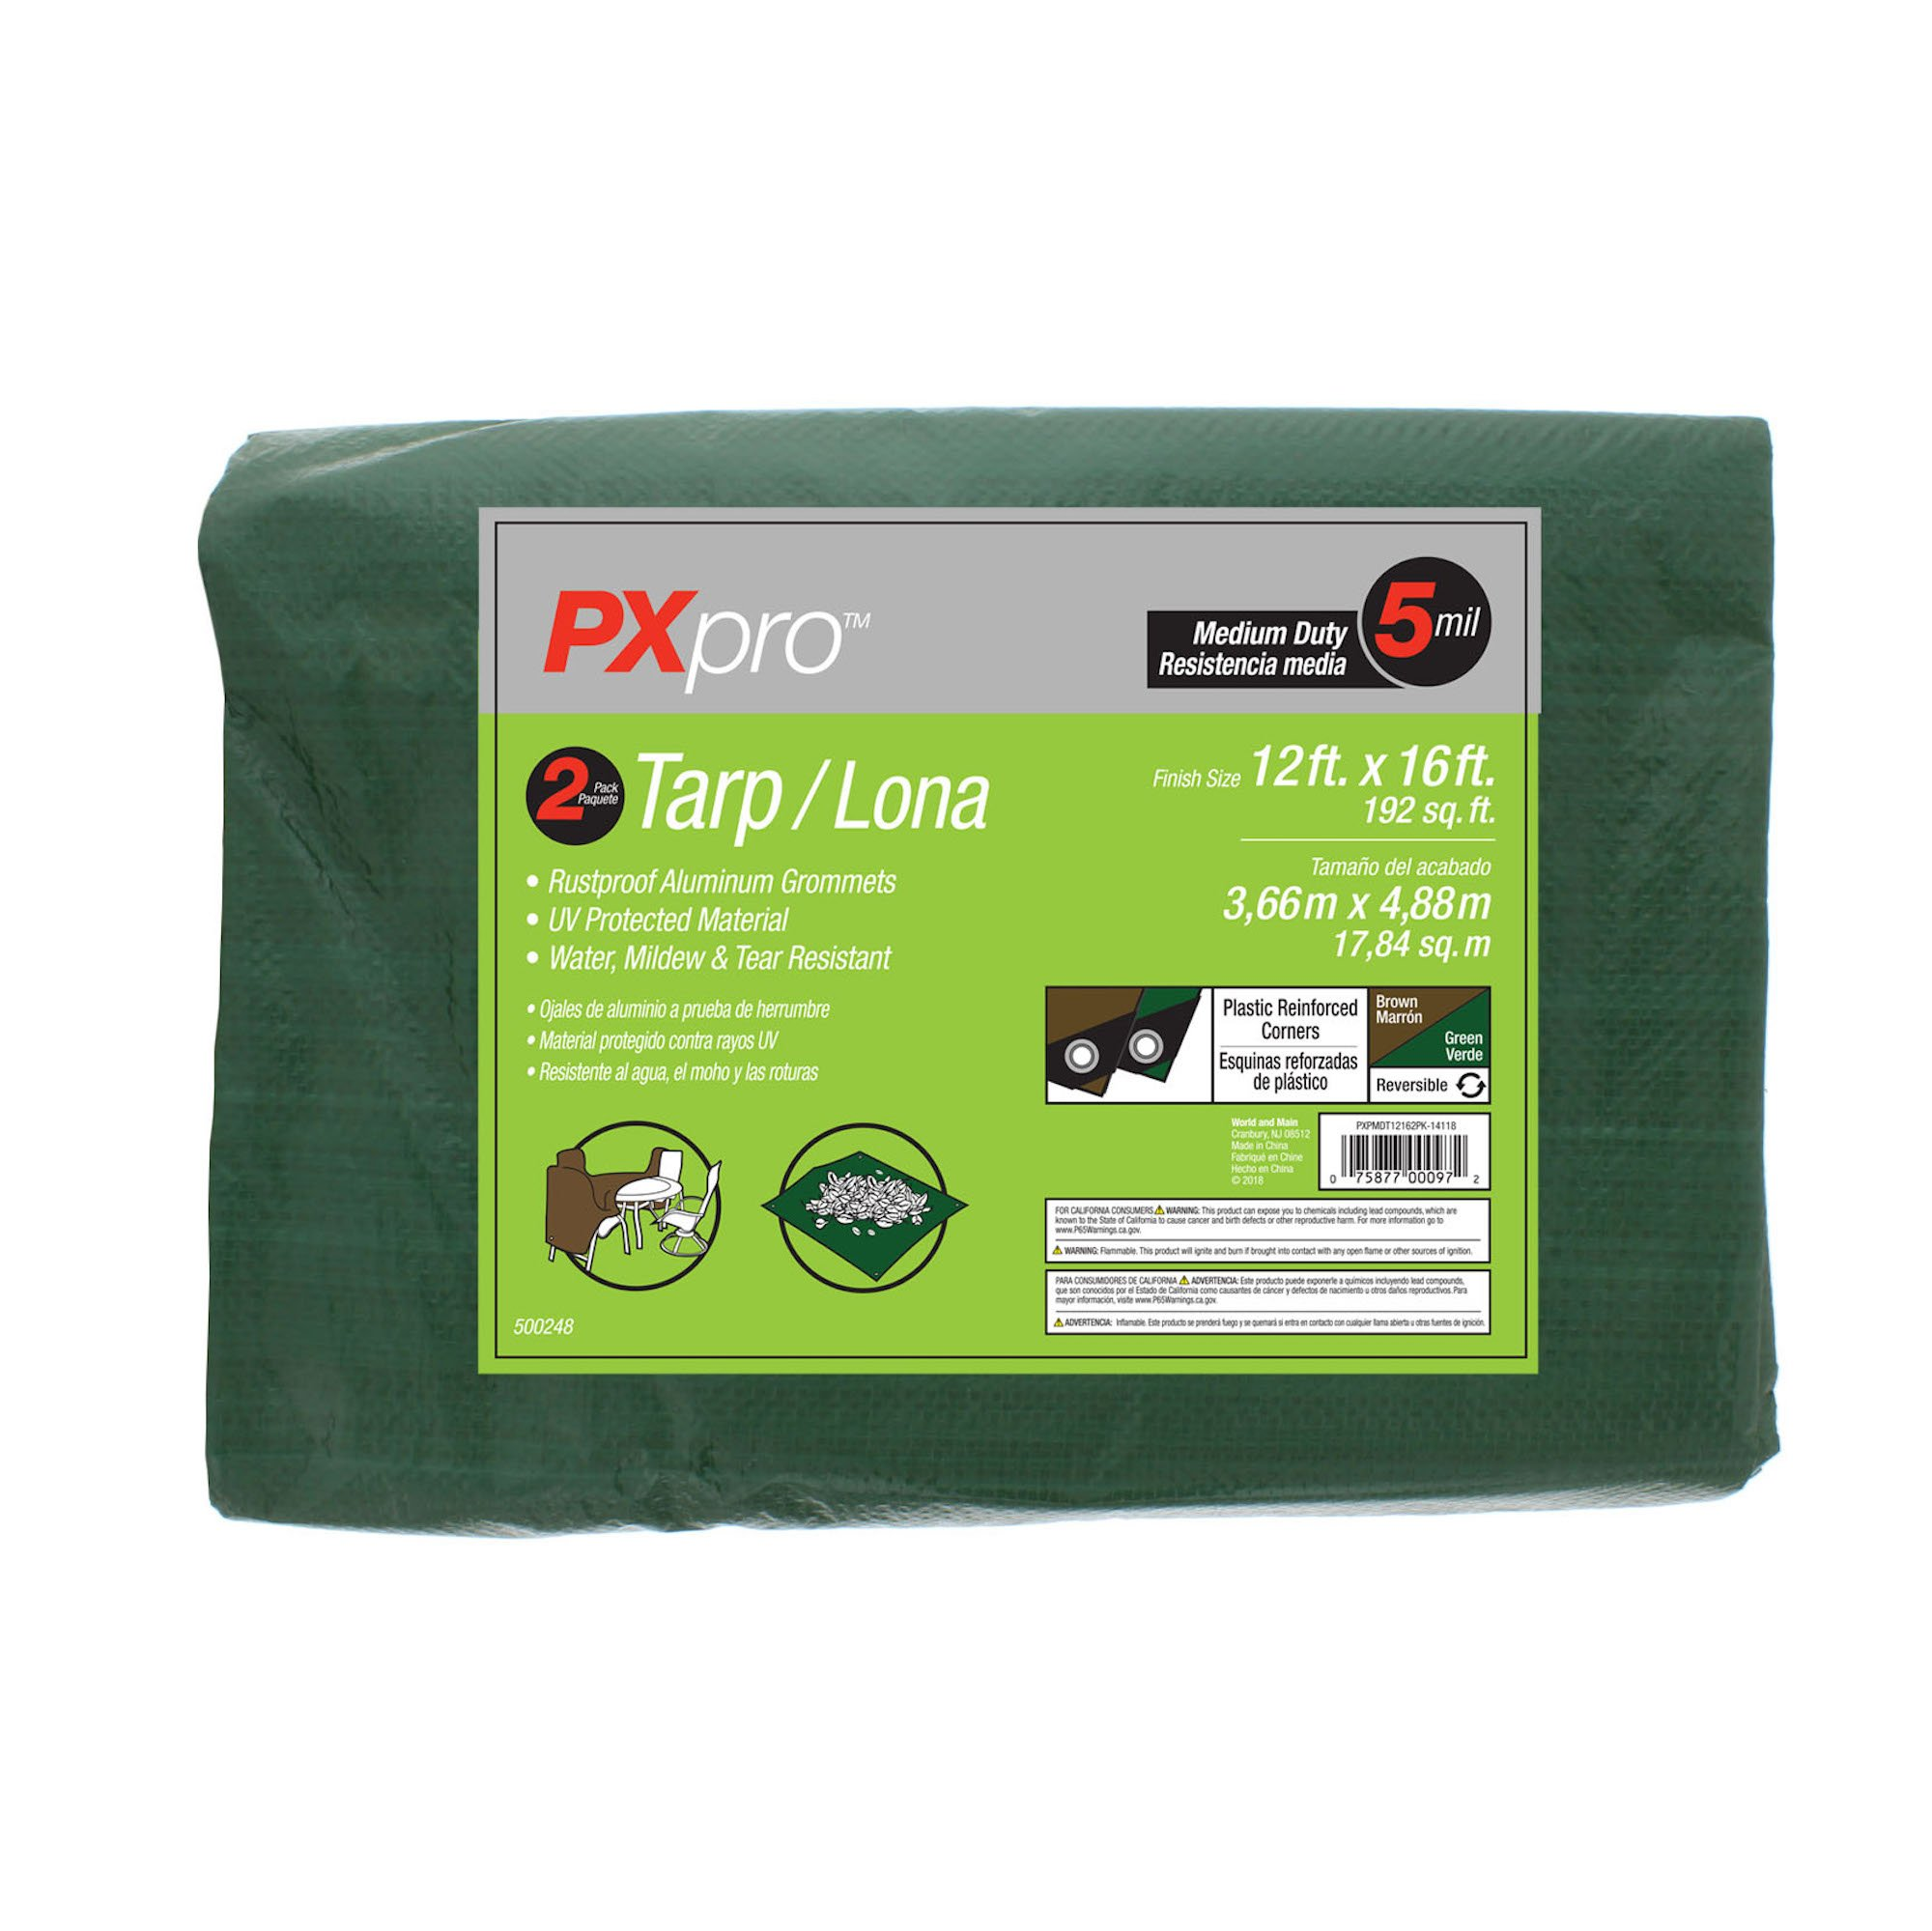 PXpro Medium Duty Tarp 12'X16' by PXpro